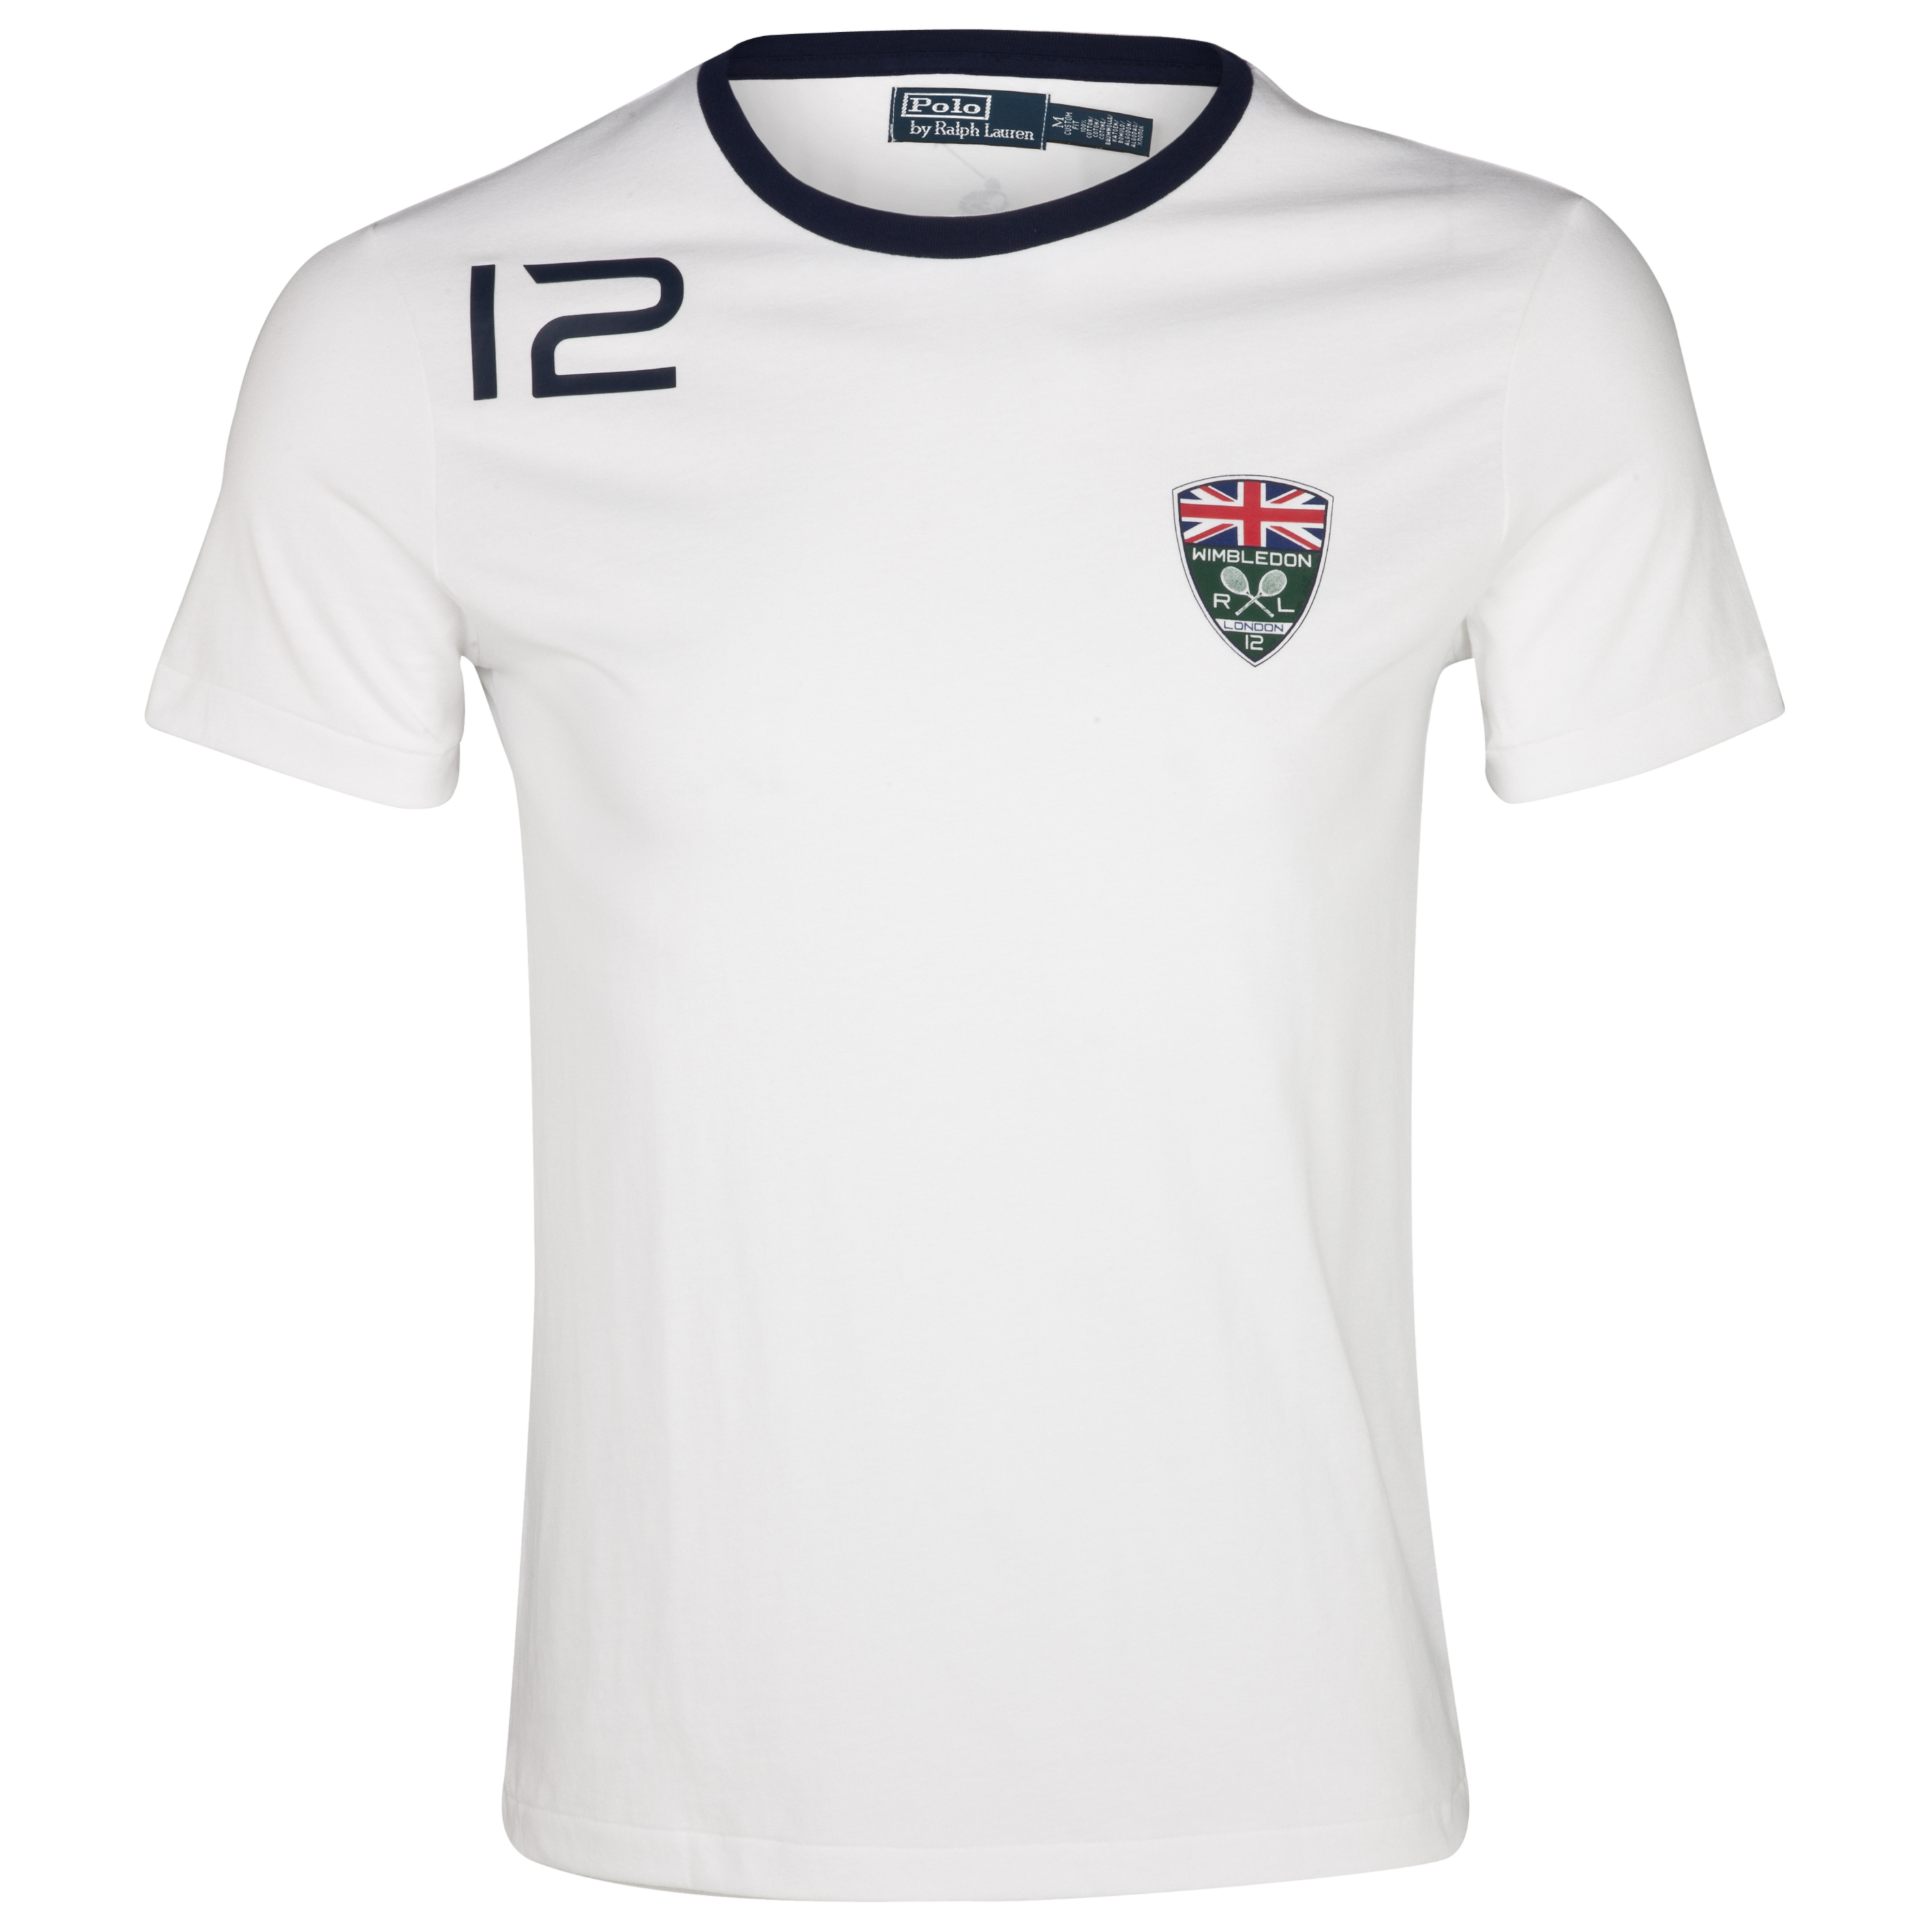 Polo Ralph Lauren Wimbledon Jersey T-Shirt - White